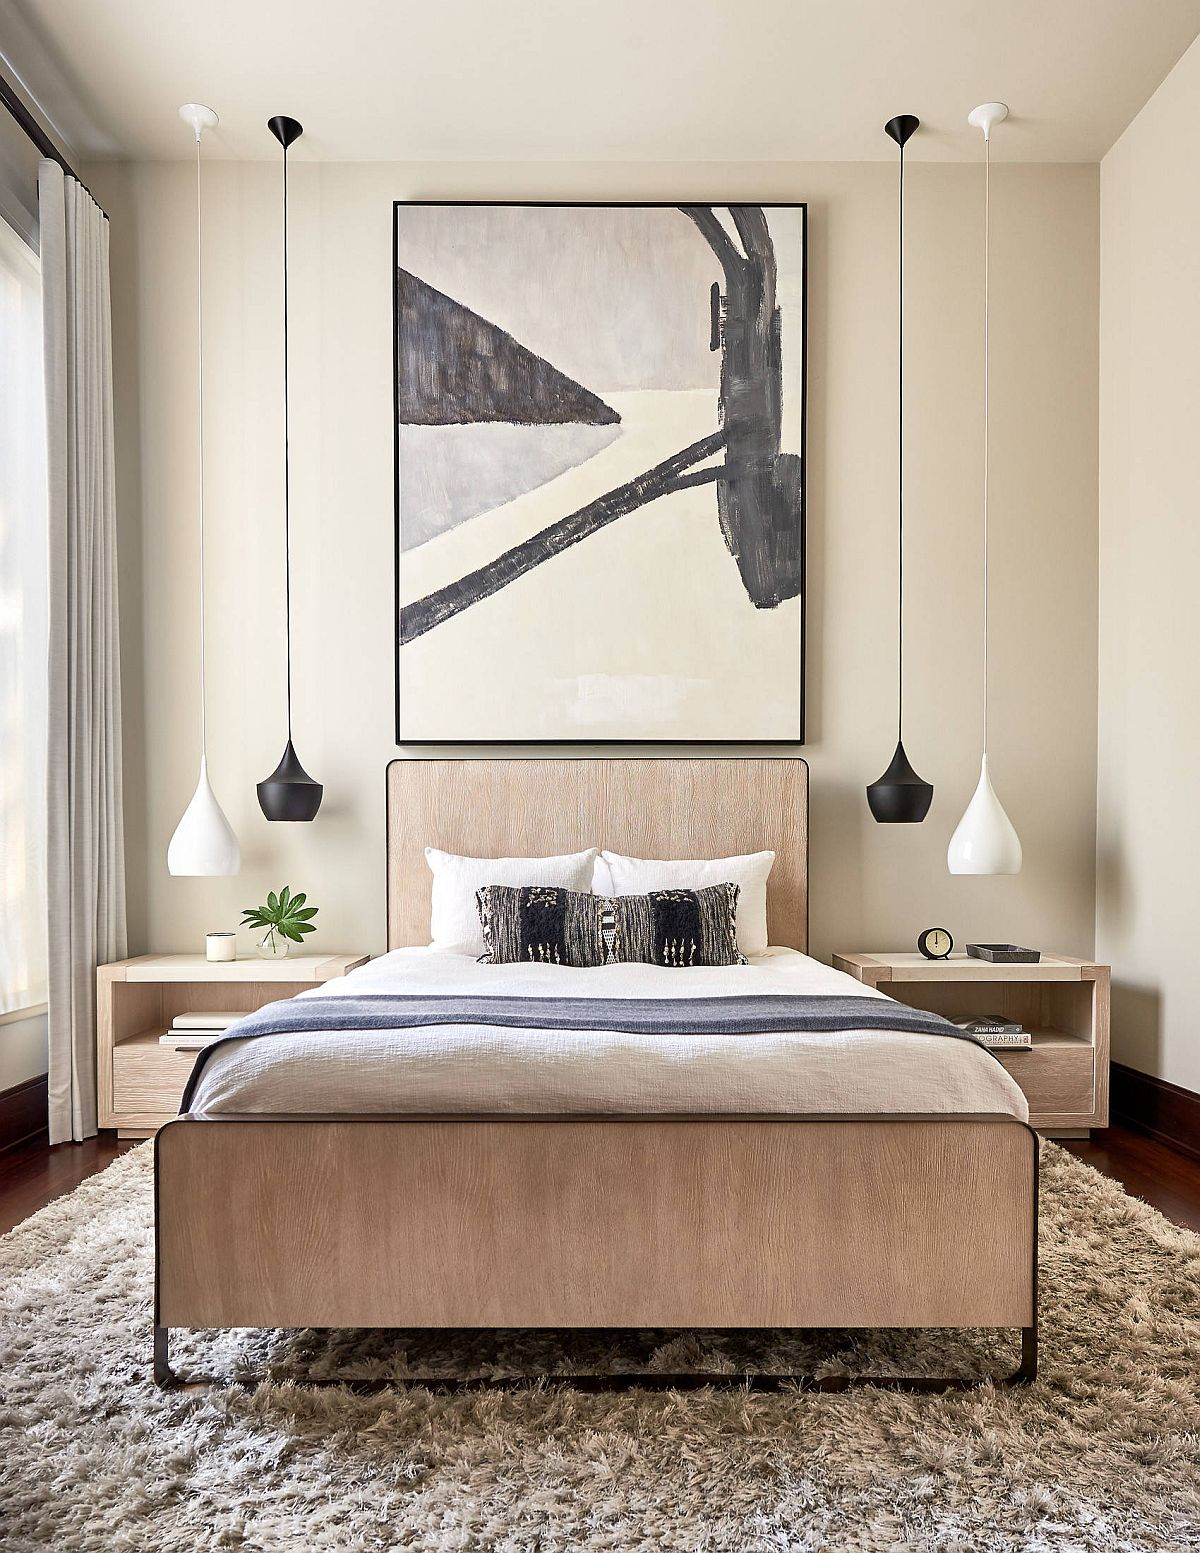 Black and white Tom Dixon pendant lights are used elegantly in this contemporary bedroom